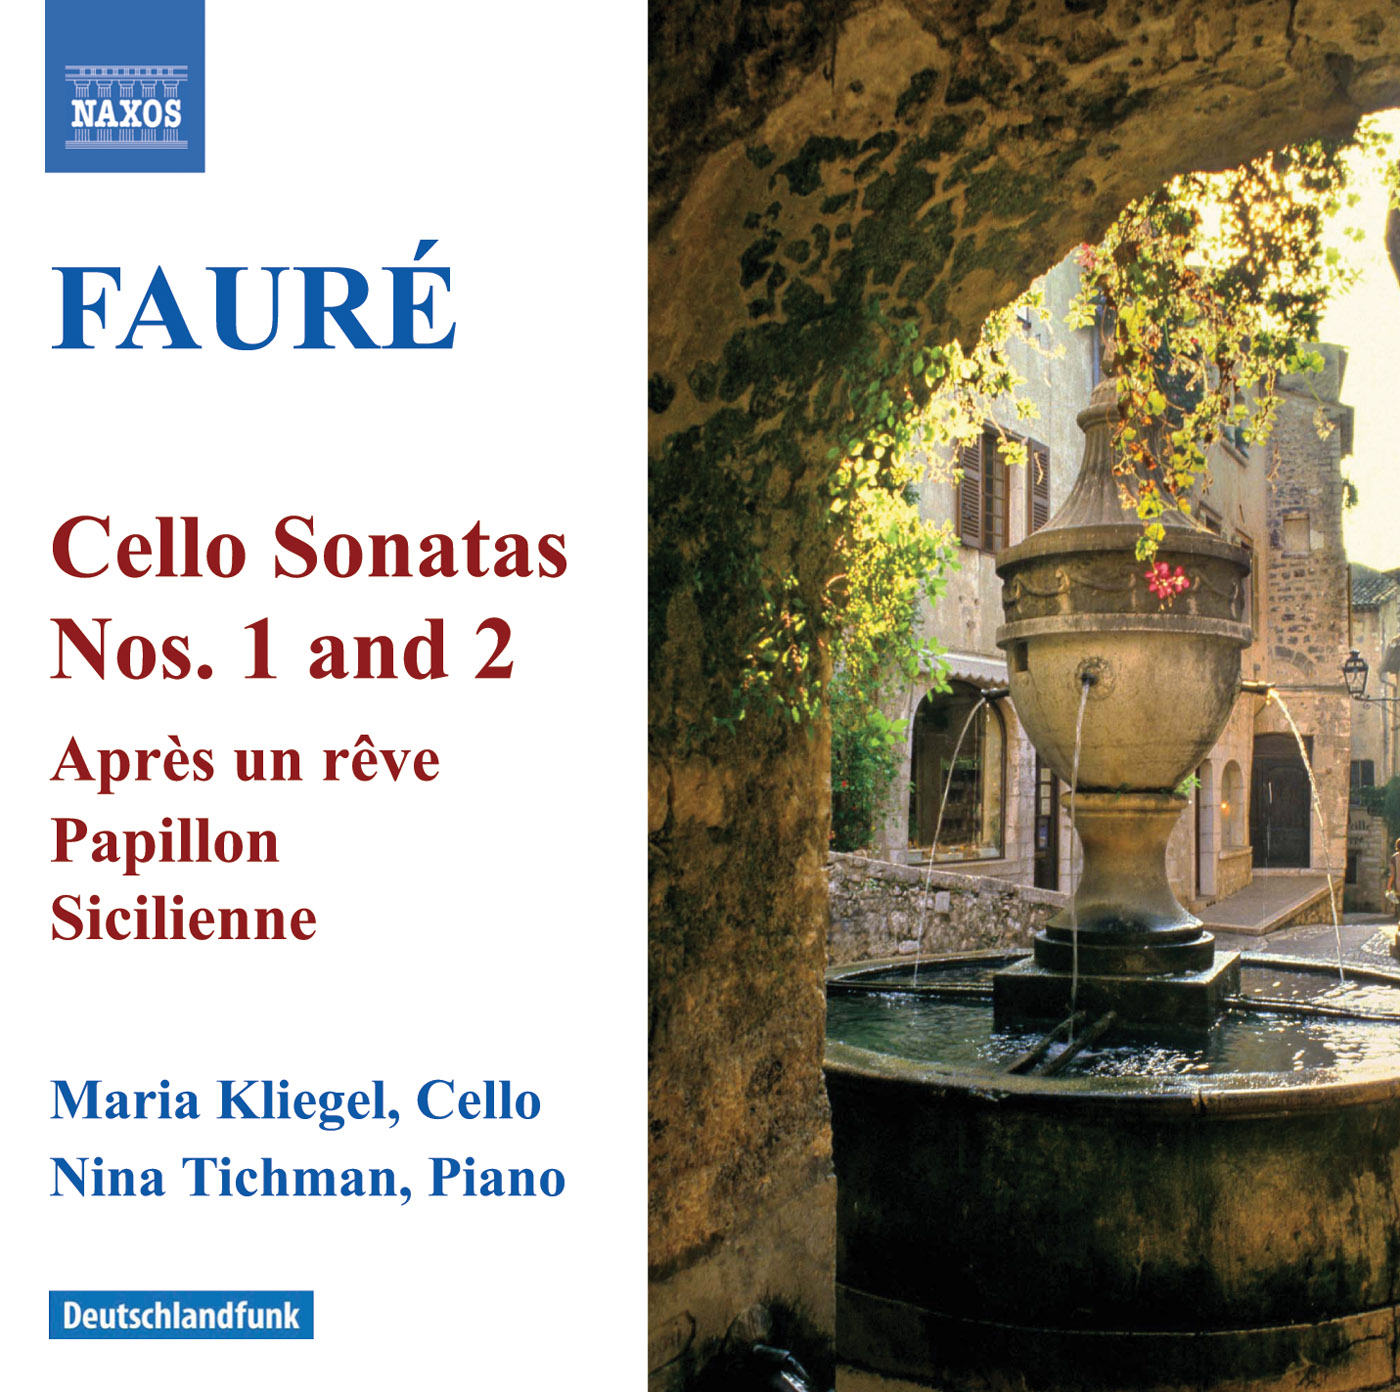 Faure: Cello Sonatas Nos. 1 and 2 - Elegie - Romance